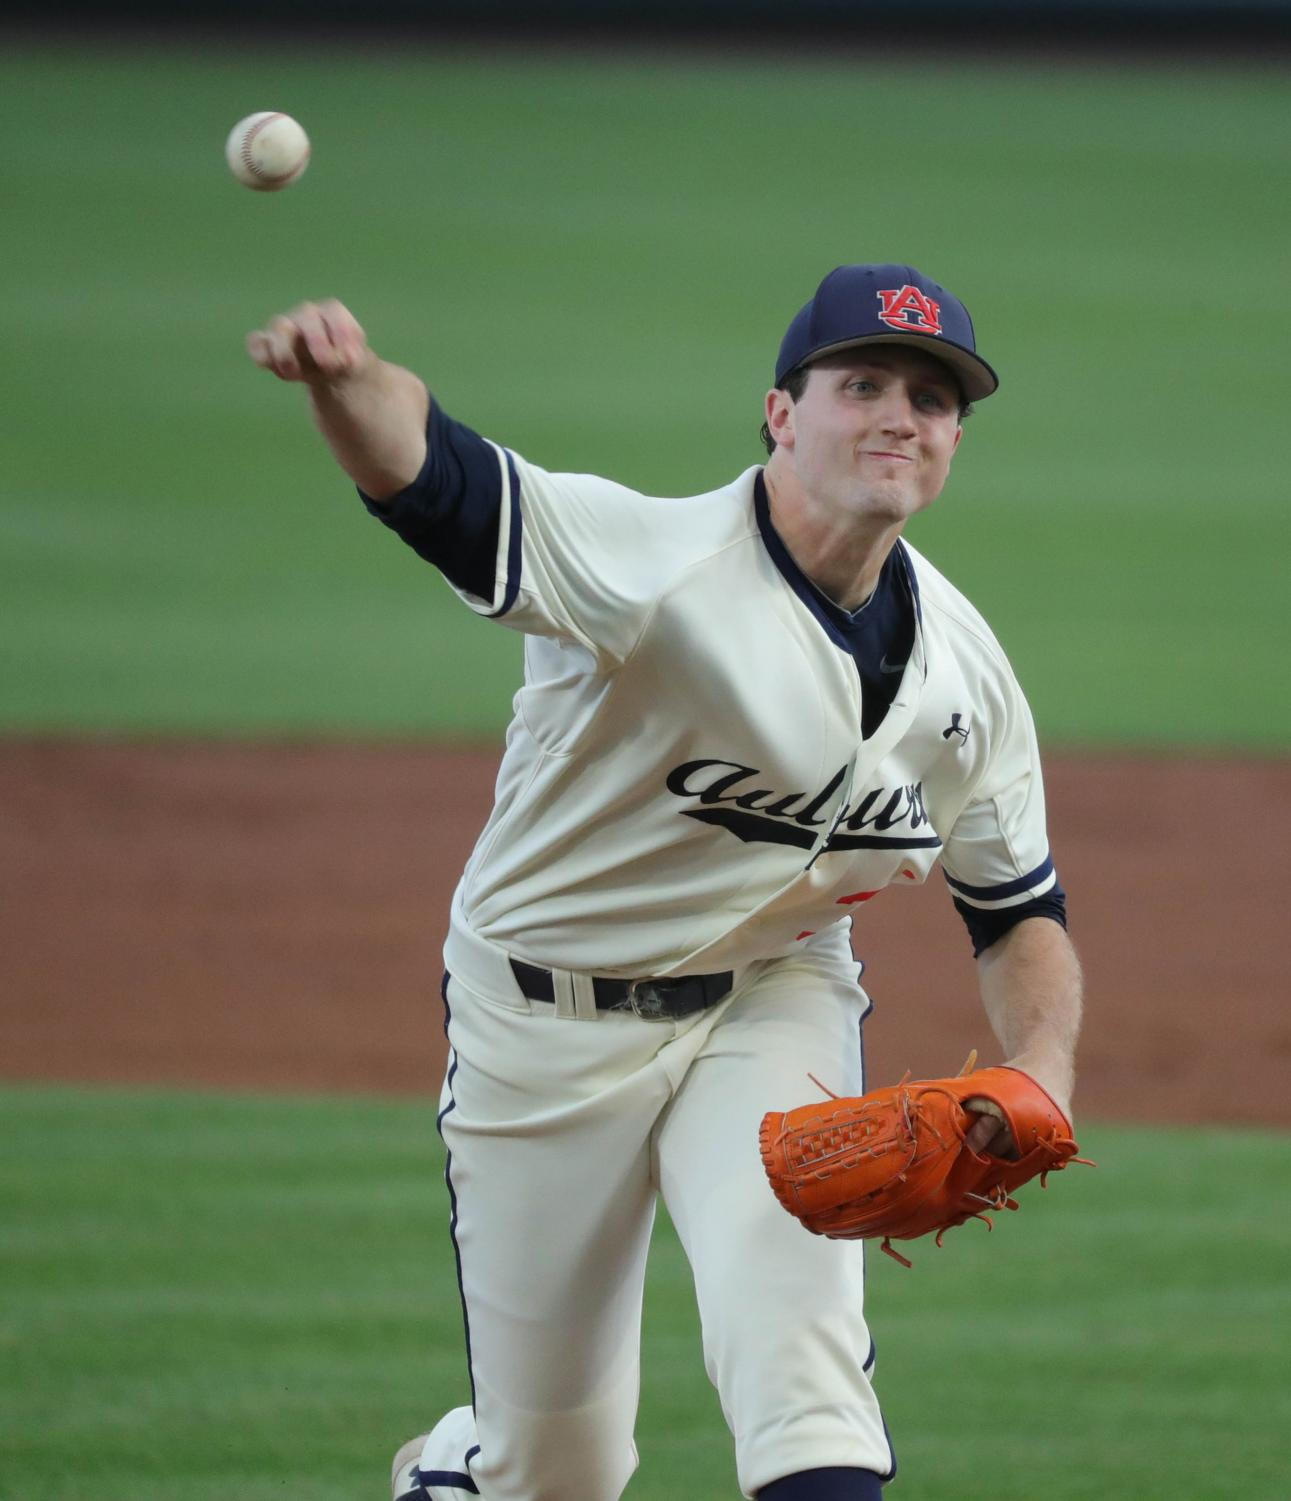 Casey Mize dominated in college, pitching for the Auburn Tigers, now he's in the Detroit Tigers farm system currently playing for the Erie SeaWolves.